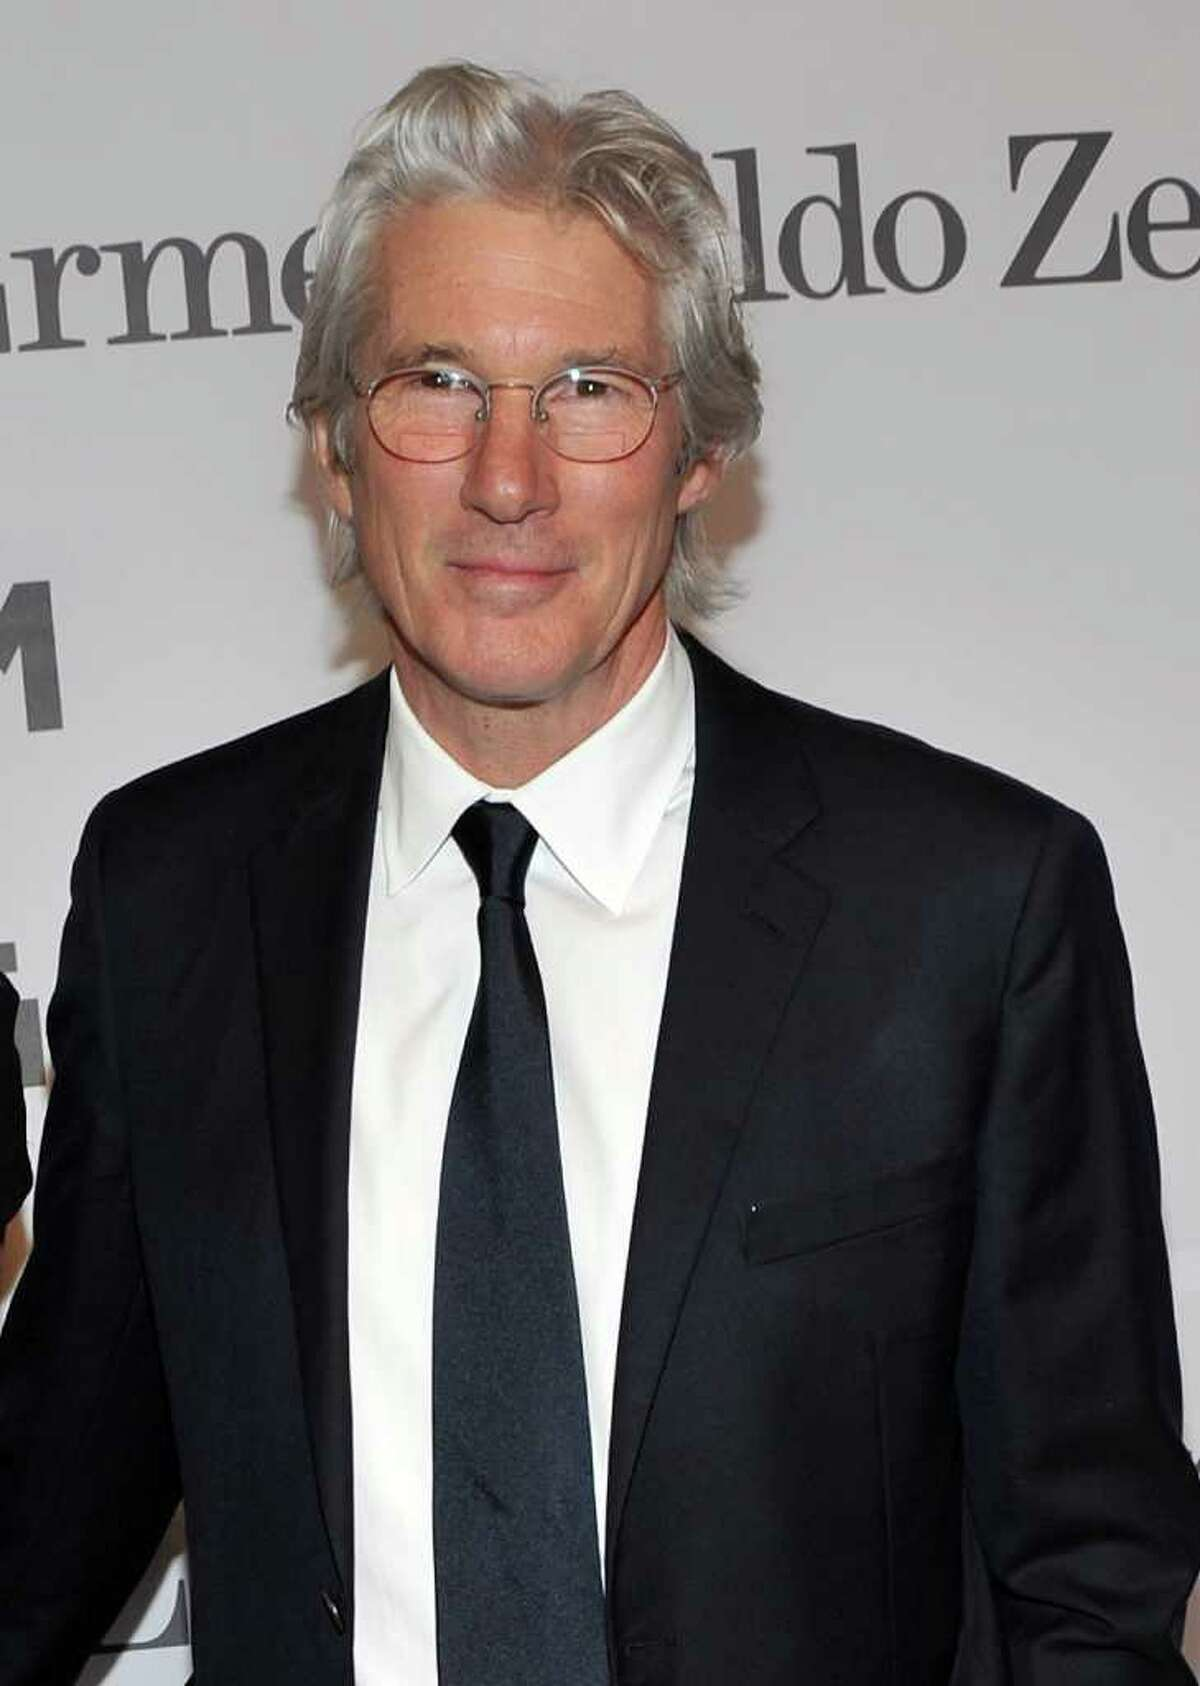 Actor Richard Gere, pictured in February at the Museum of the Moving Image salute to Alec Baldwin, was recently seen at the Stamford on the Sound Food & Wine Festival in Harbor Point's Commons Park. (Photo by Stephen Lovekin/Getty Images)